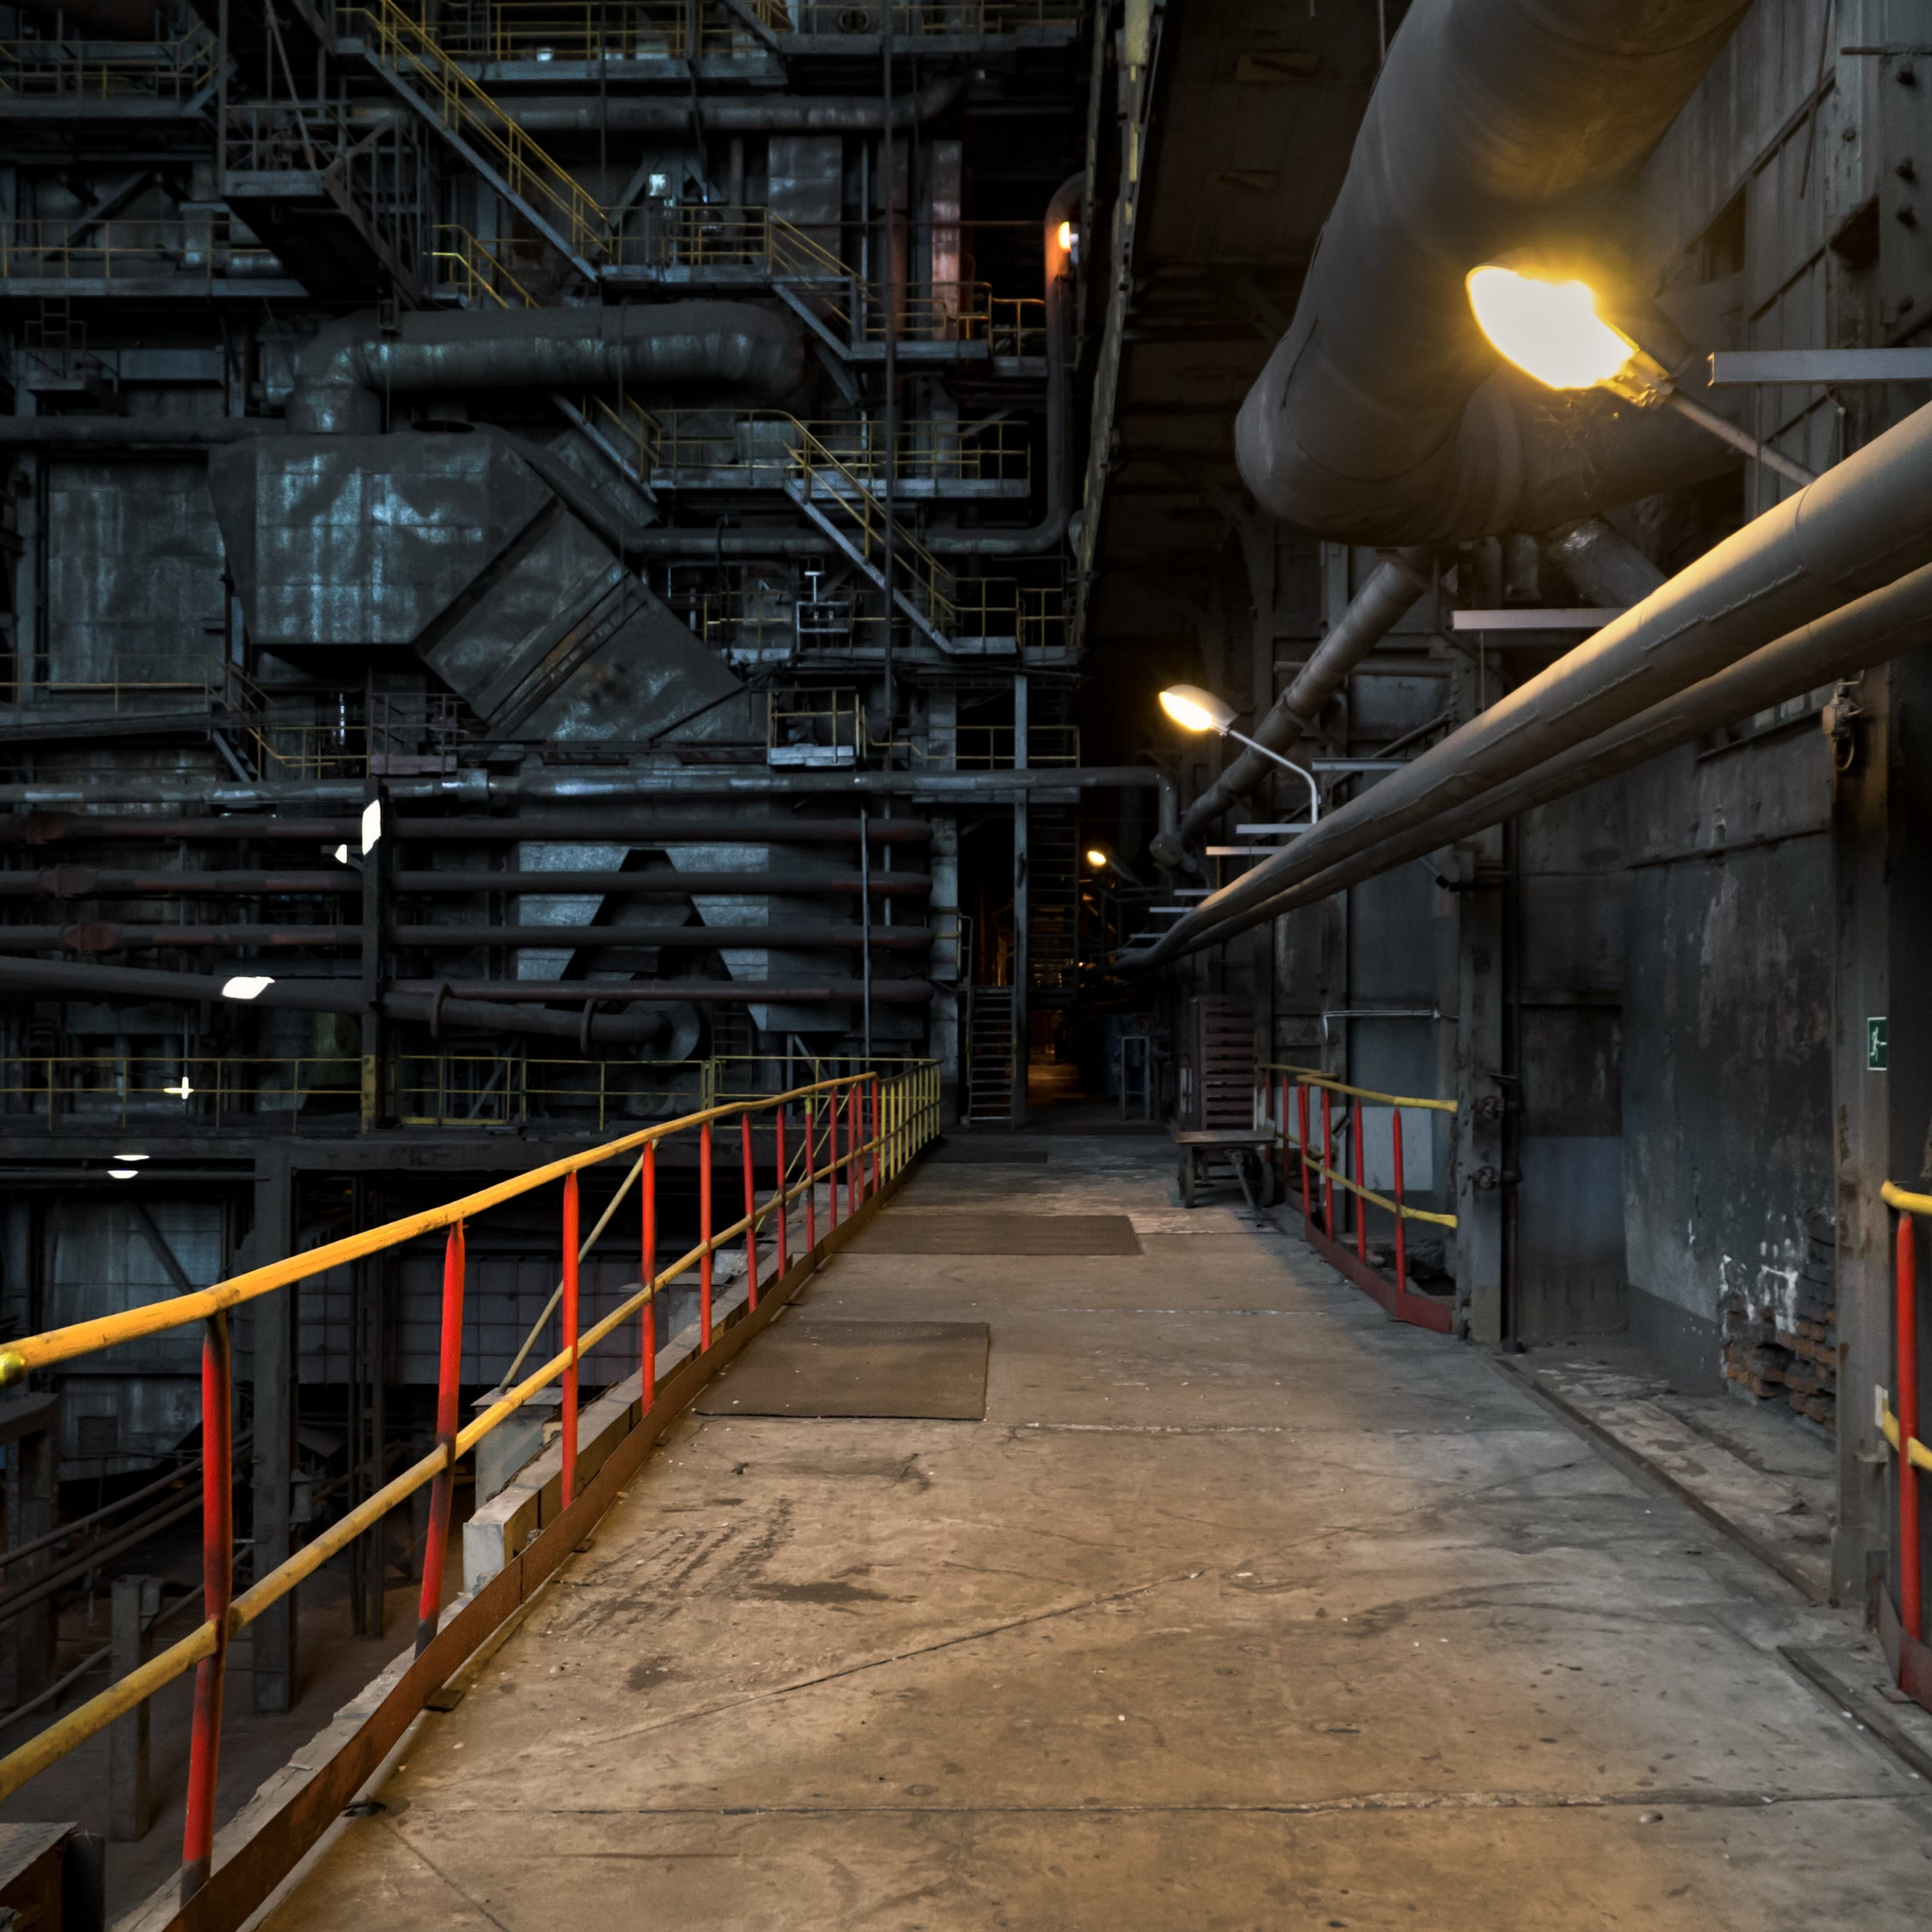 The inside of a power station | 2224x2224 wallpaper